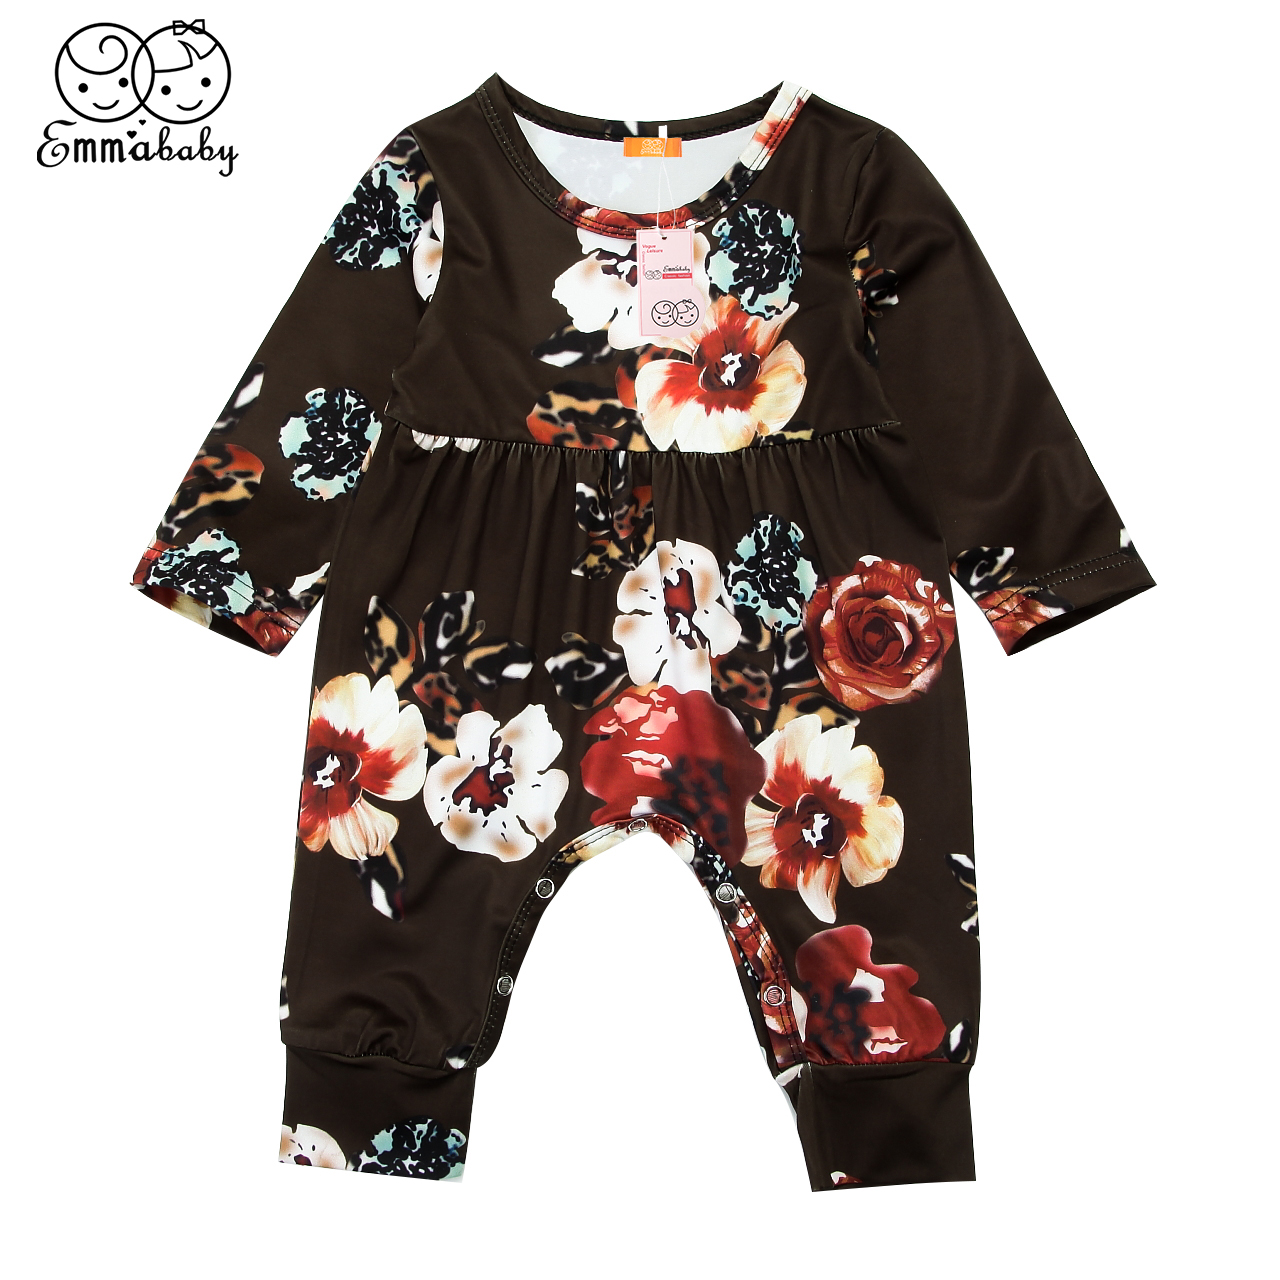 2018 new casual kid floral print rompers Newborn Baby Girls Long Sleeve Romper Jumpsuit Sunsuit cute kids flower Outfits Costume